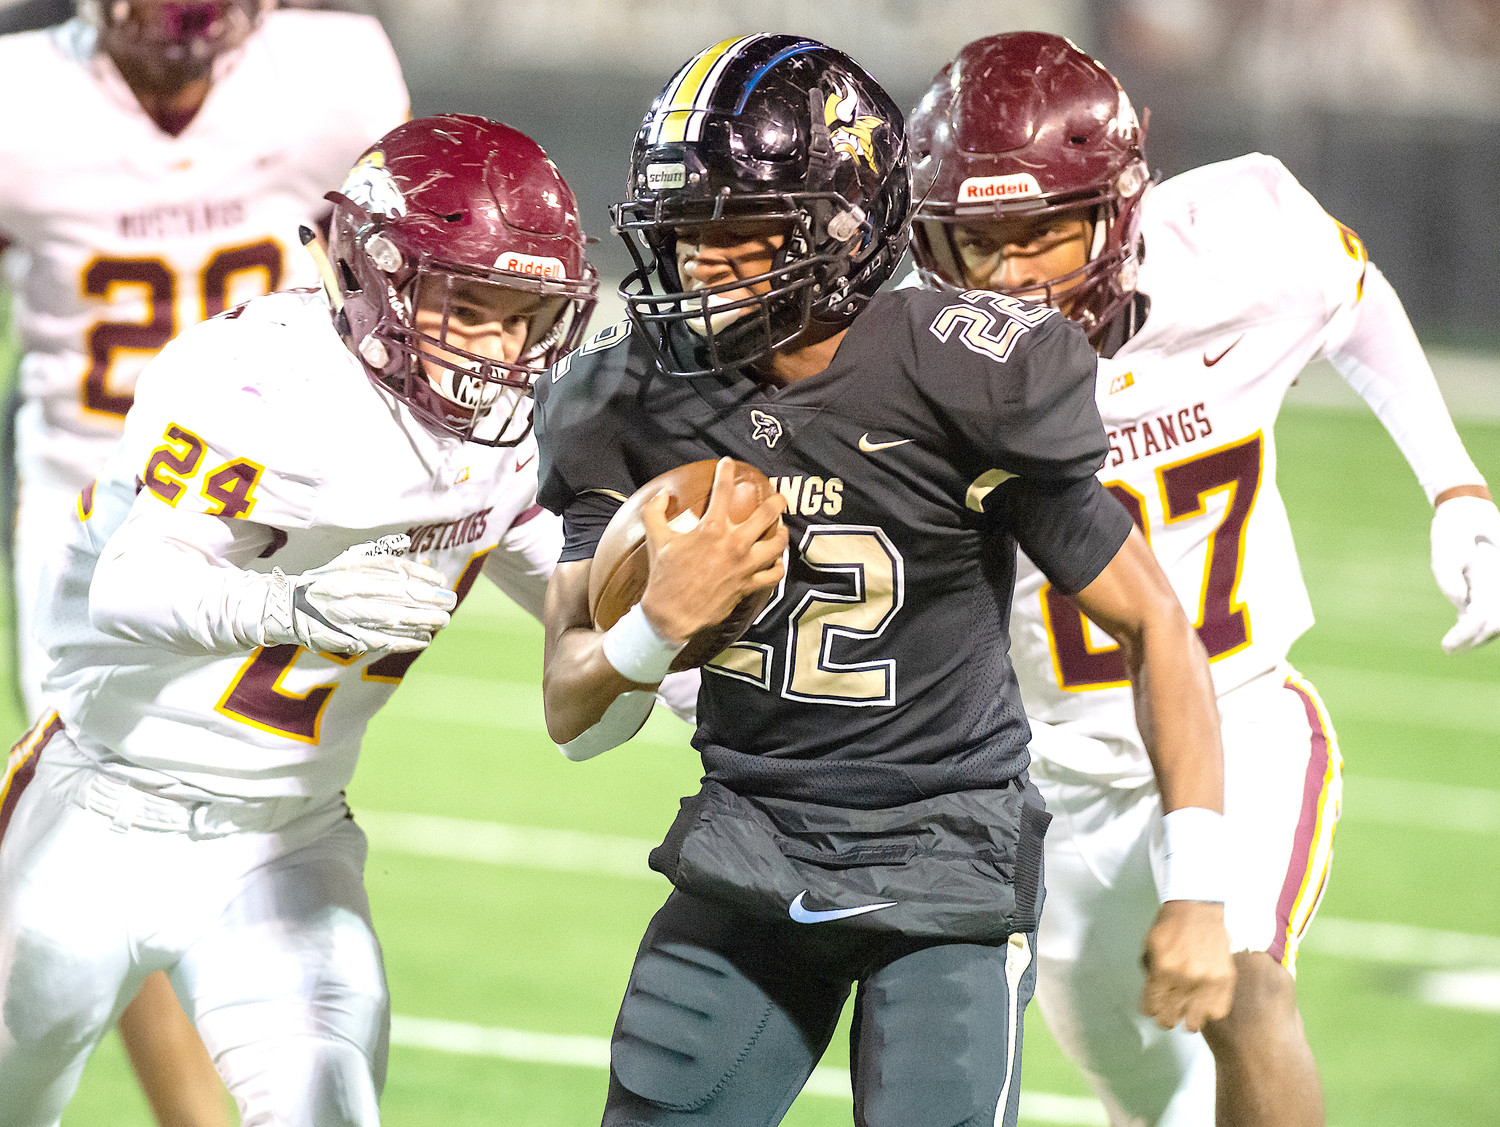 Jasper's Treyvon Stewart (22) runs between Madison Academy defenders Asa Barnett (24) and Jacobi McBride (27) during their Class 5A first-round playoff game at Ki-Ro Gambrell Field on Friday night. The Vikings won 55-14.